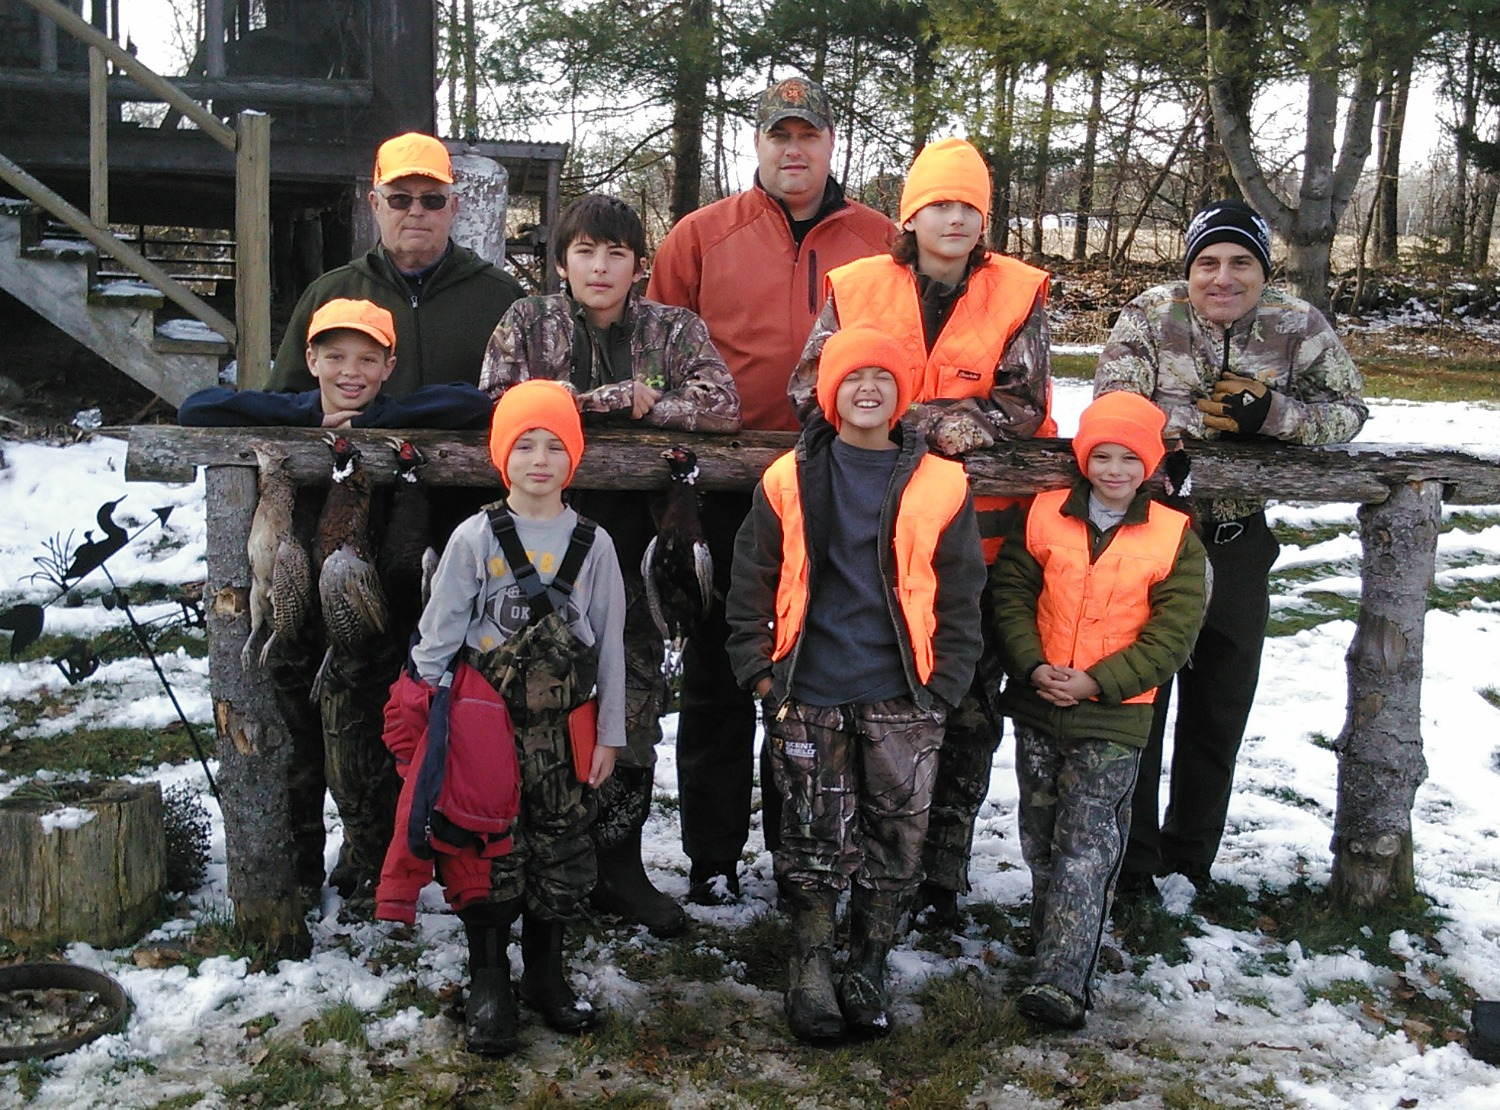 Maine upland hunts